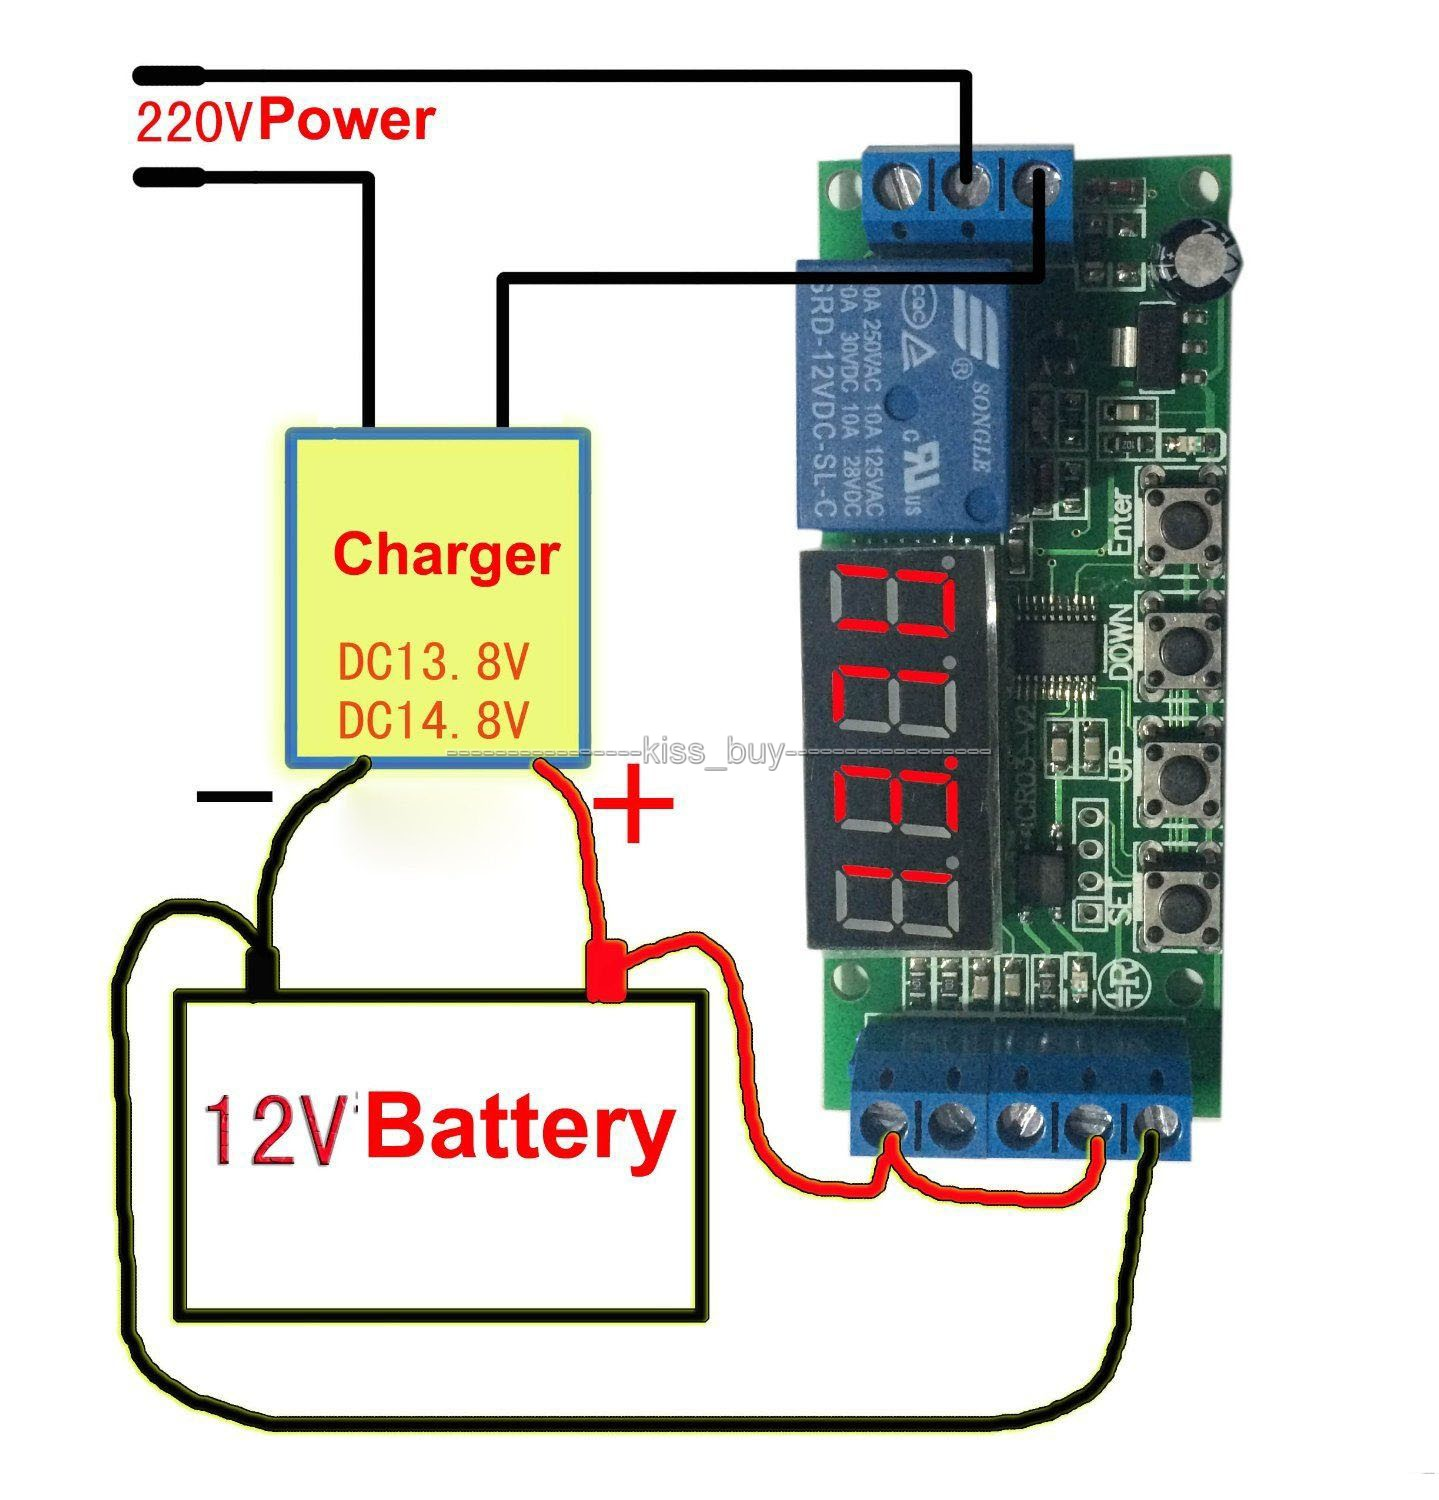 12v battery charger circuit with overcharge protection dc 12v automatic battery charger charging controller ... circuit diagram 24v battery charger #13